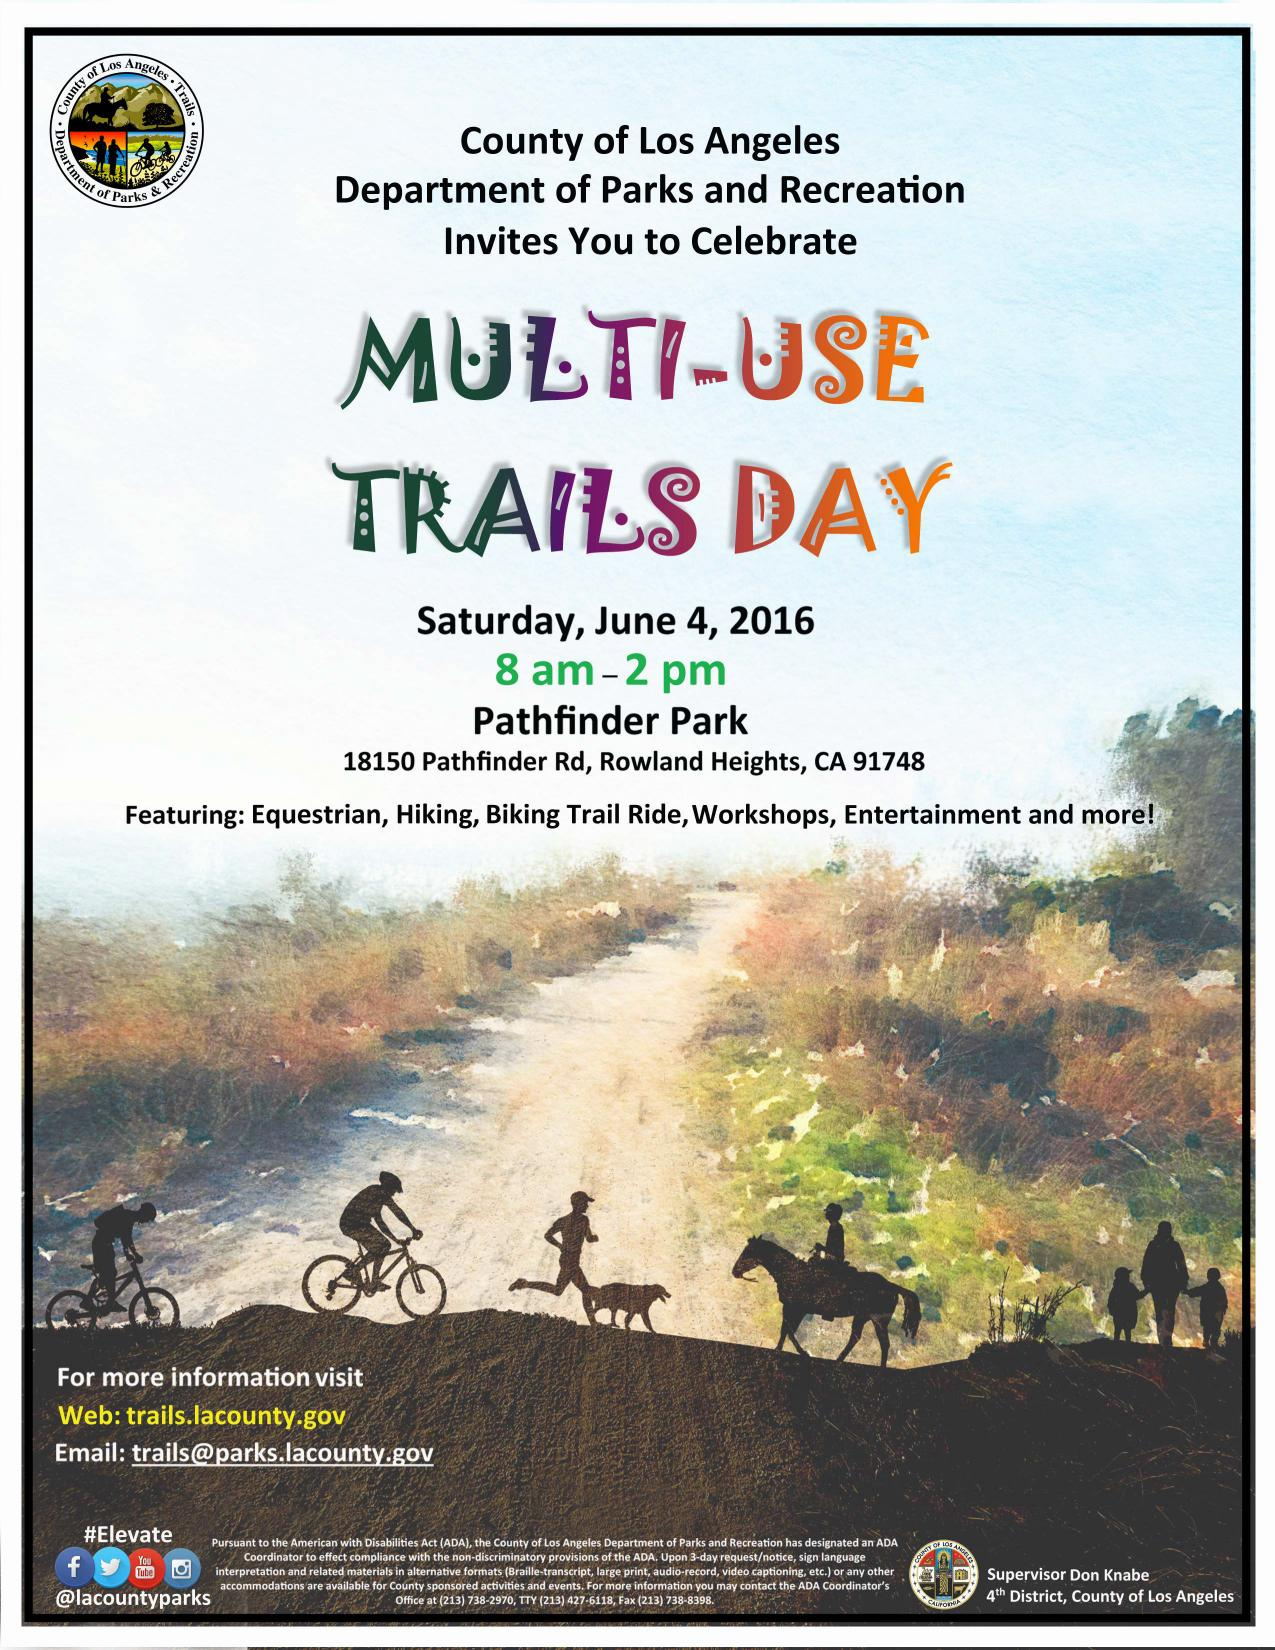 LA County 2016 Trails Day Flyer